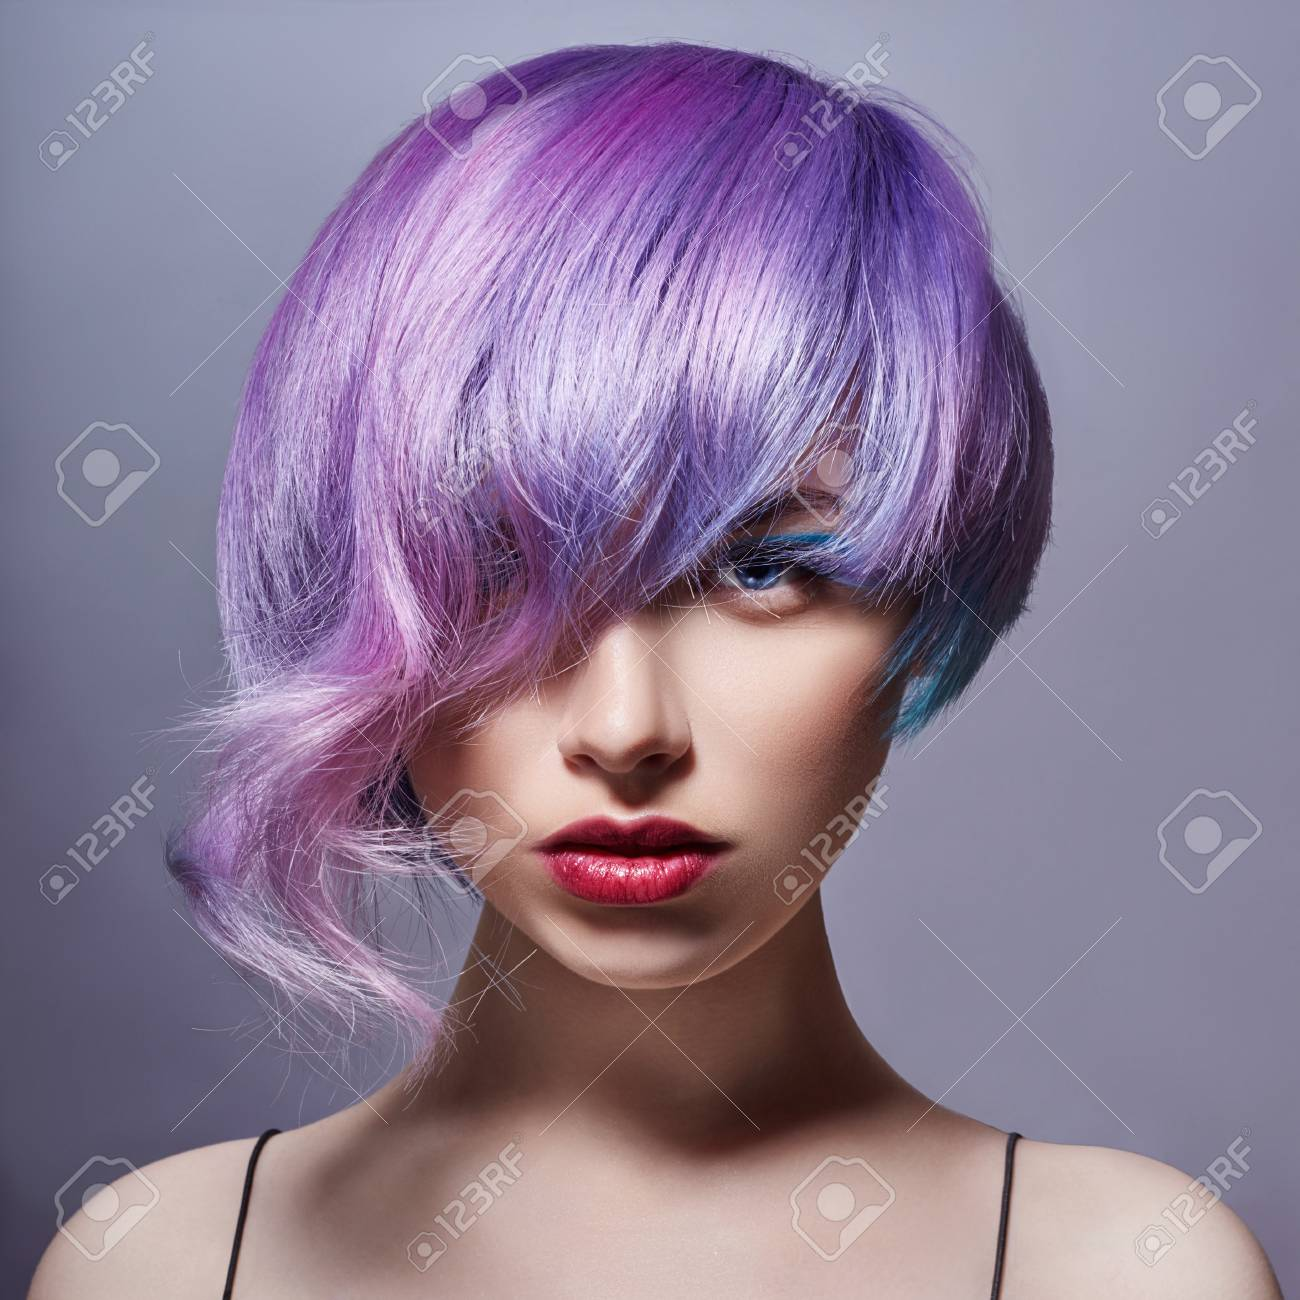 Portrait Of A Woman With Bright Colored Flying Hair All Shades